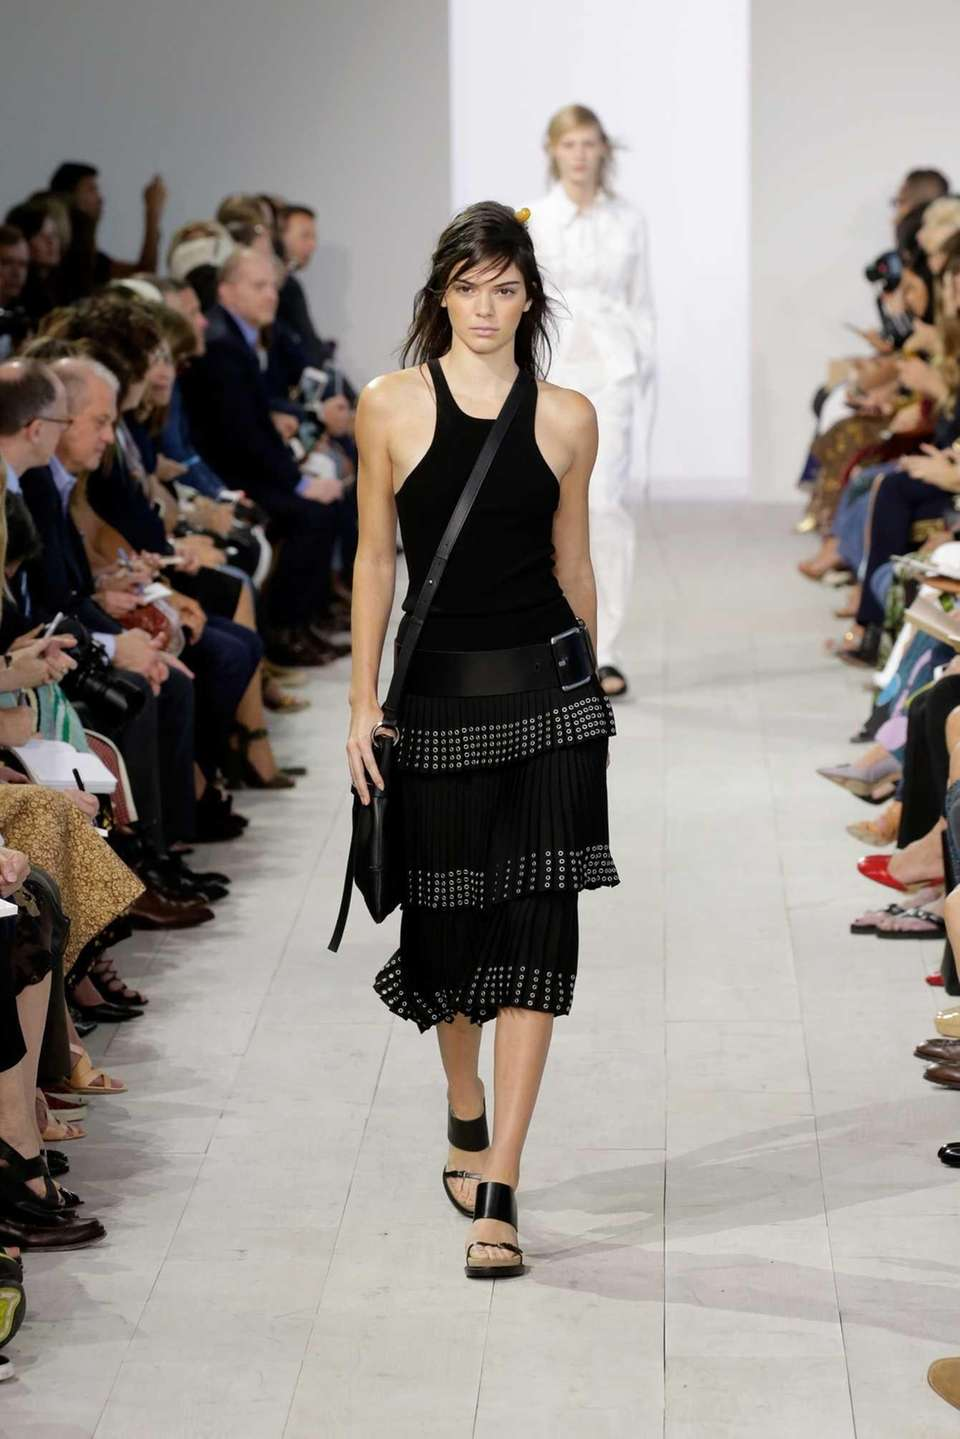 Kendall Jenner walks the runway at the Michael